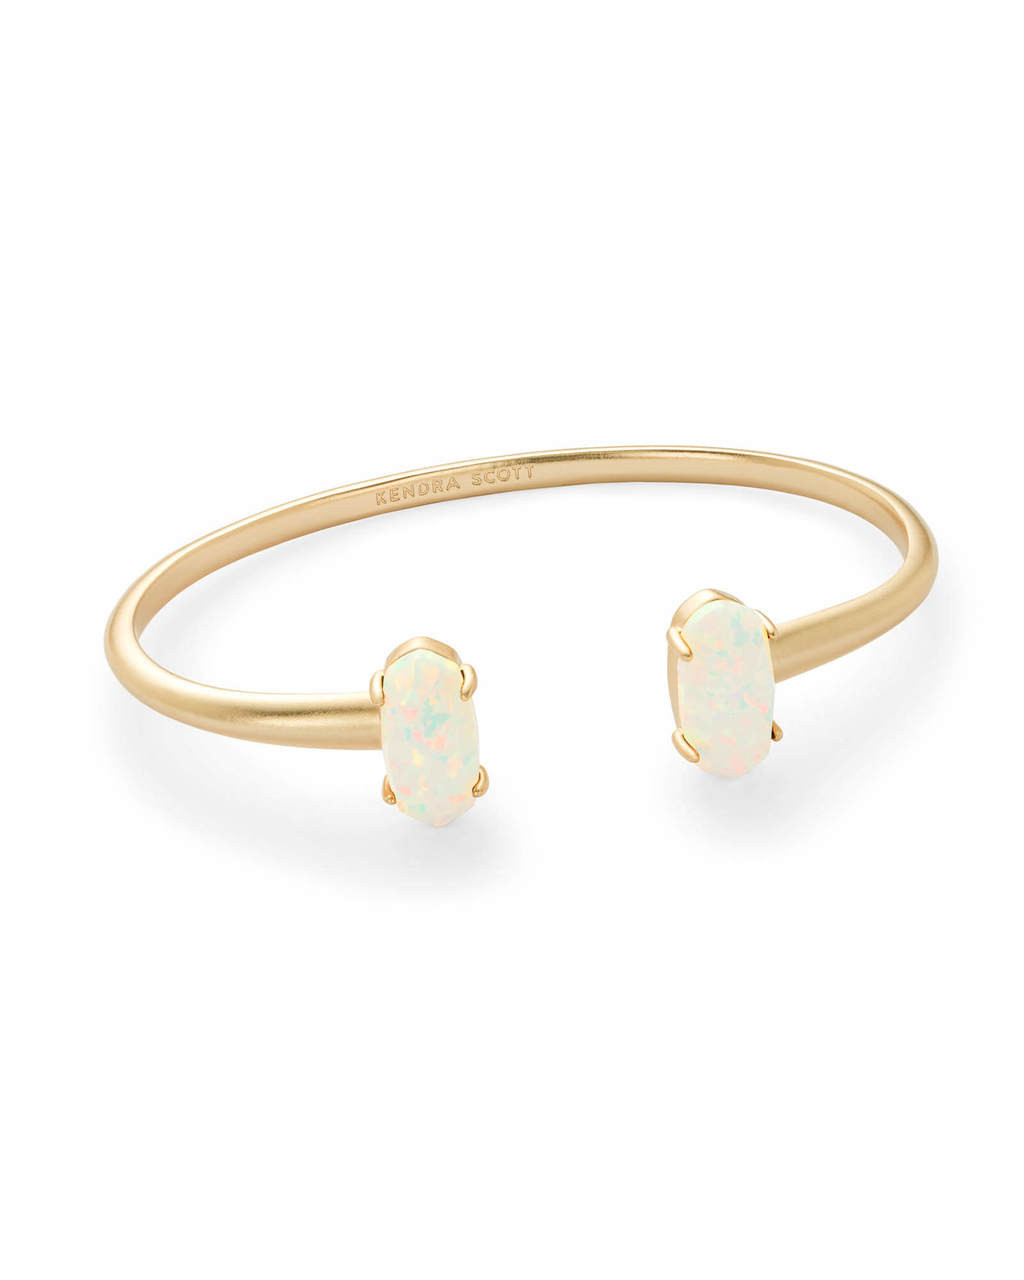 a7cac818d27084 Kendra Scott Edie Bracelet Gold Tone/White Opal. Price: $95.00. Image 1